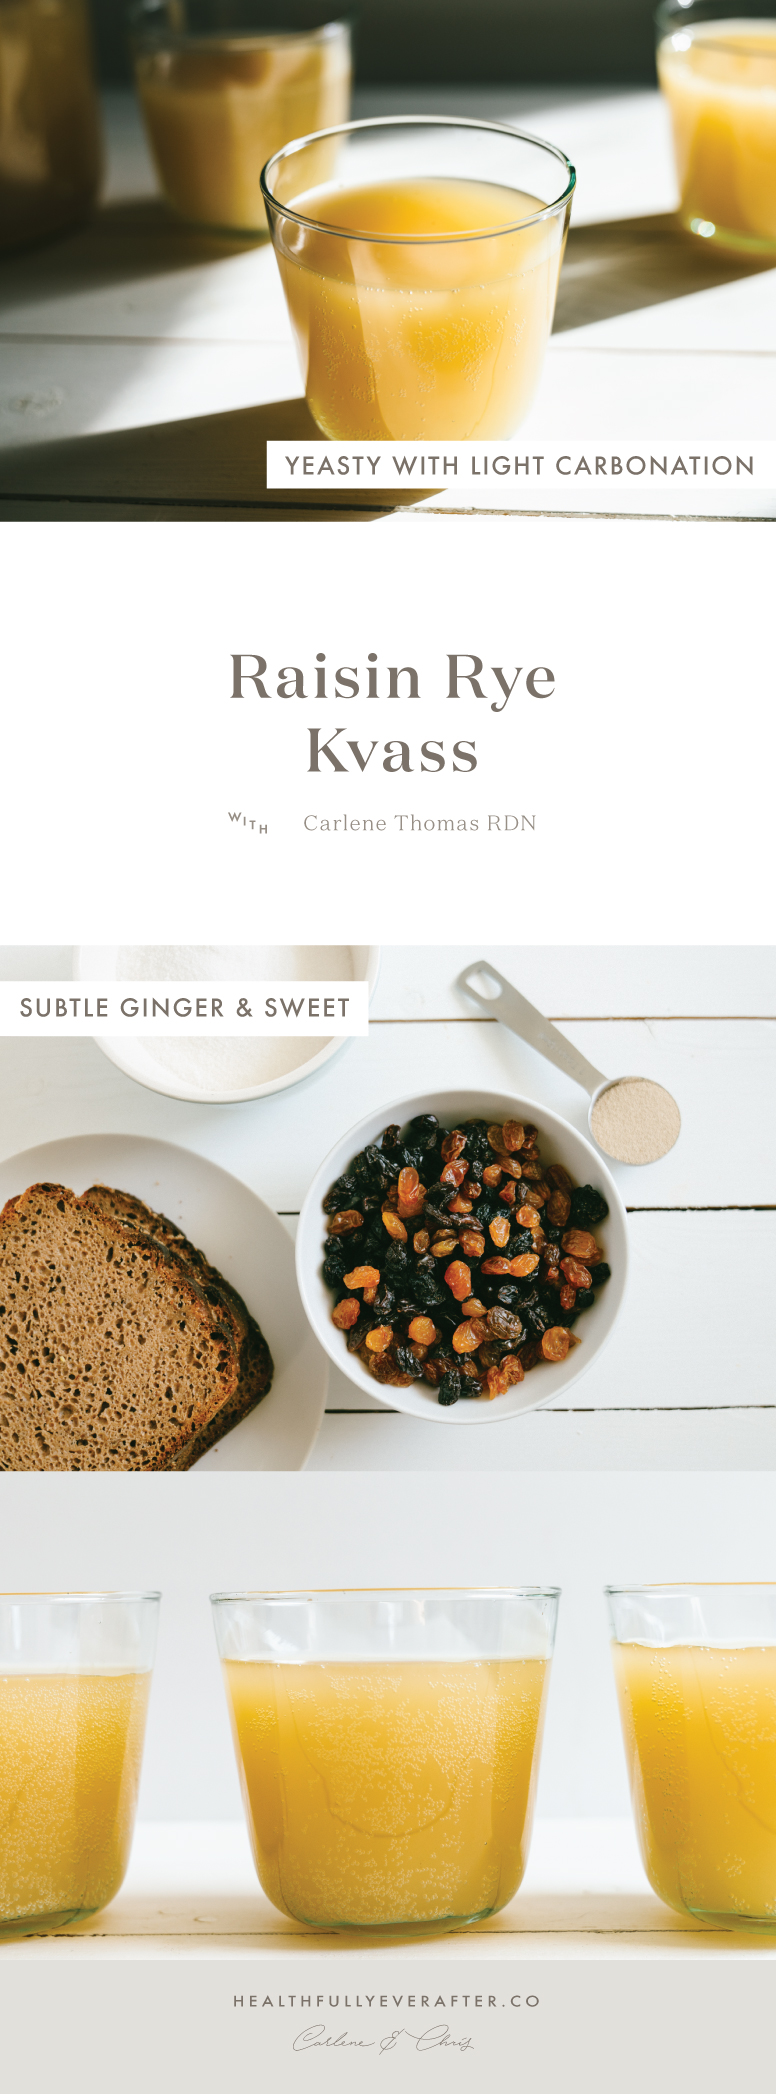 sparkling kvass raisin rye drink